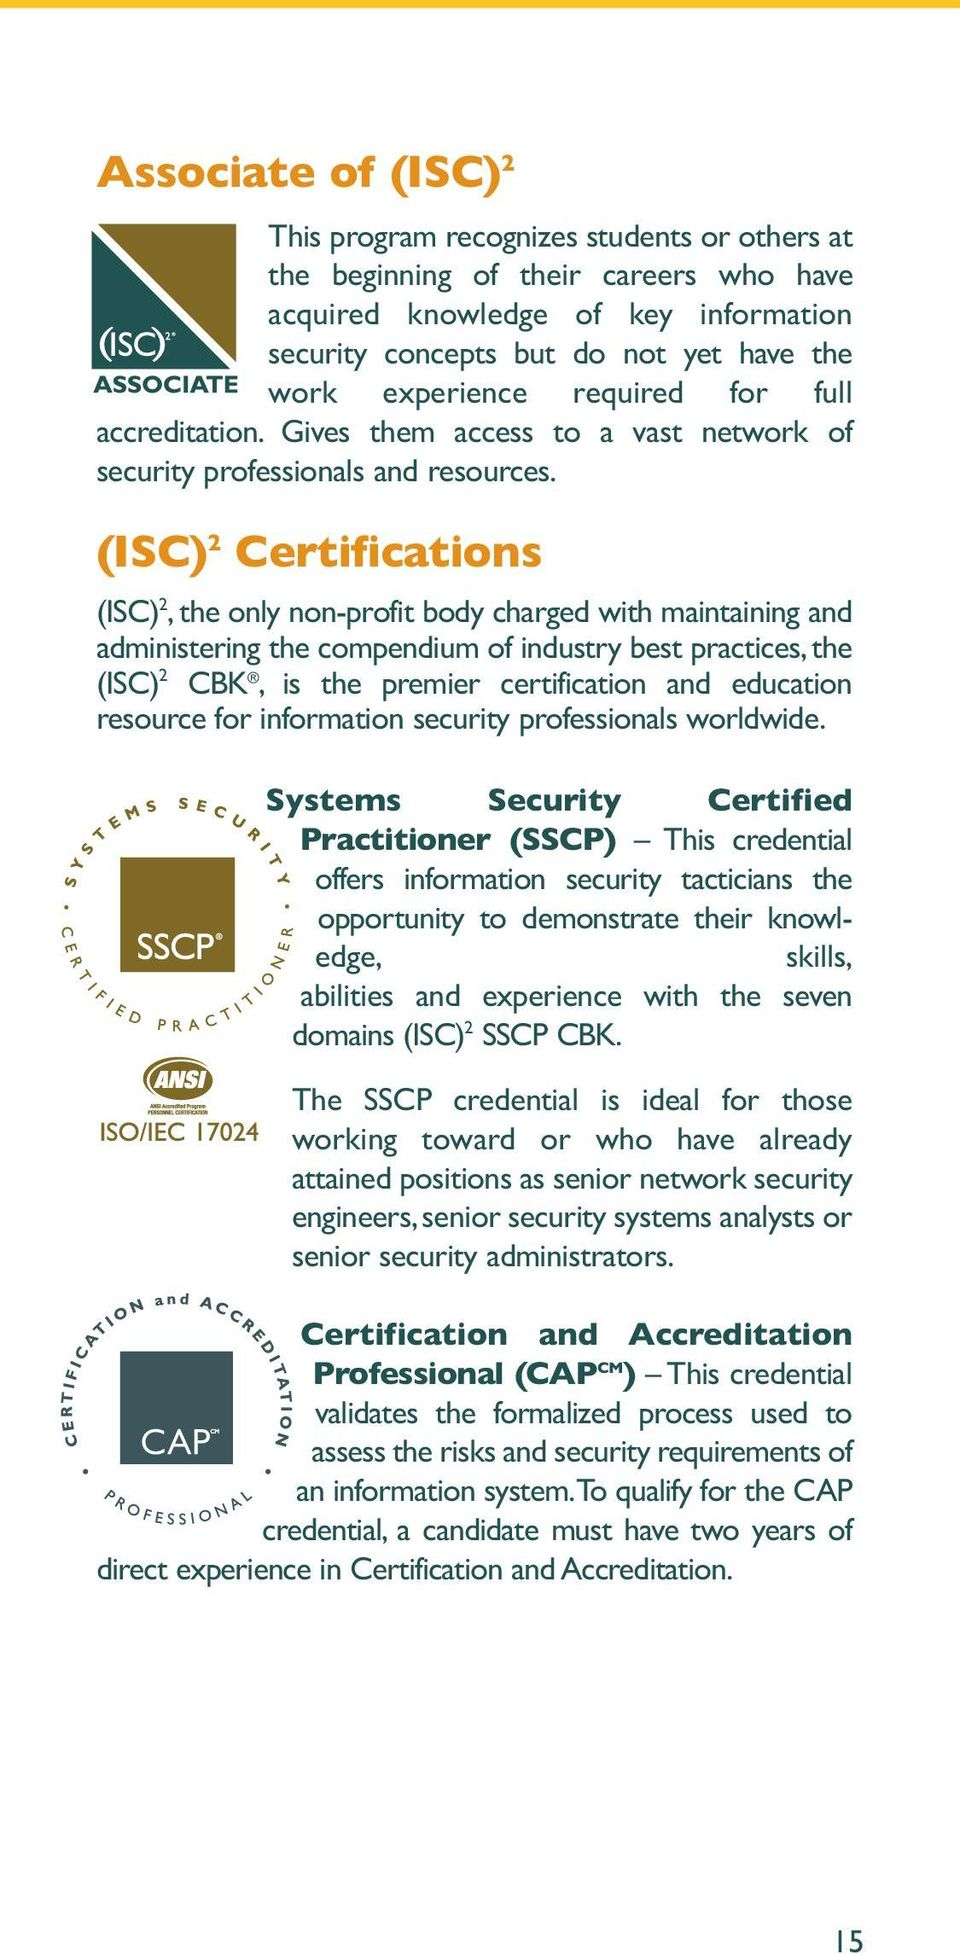 (ISC) 2 Certifications (ISC) 2, the only non-profit body charged with maintaining and administering the compendium of industry best practices, the (ISC) 2 CBK, is the premier certification and